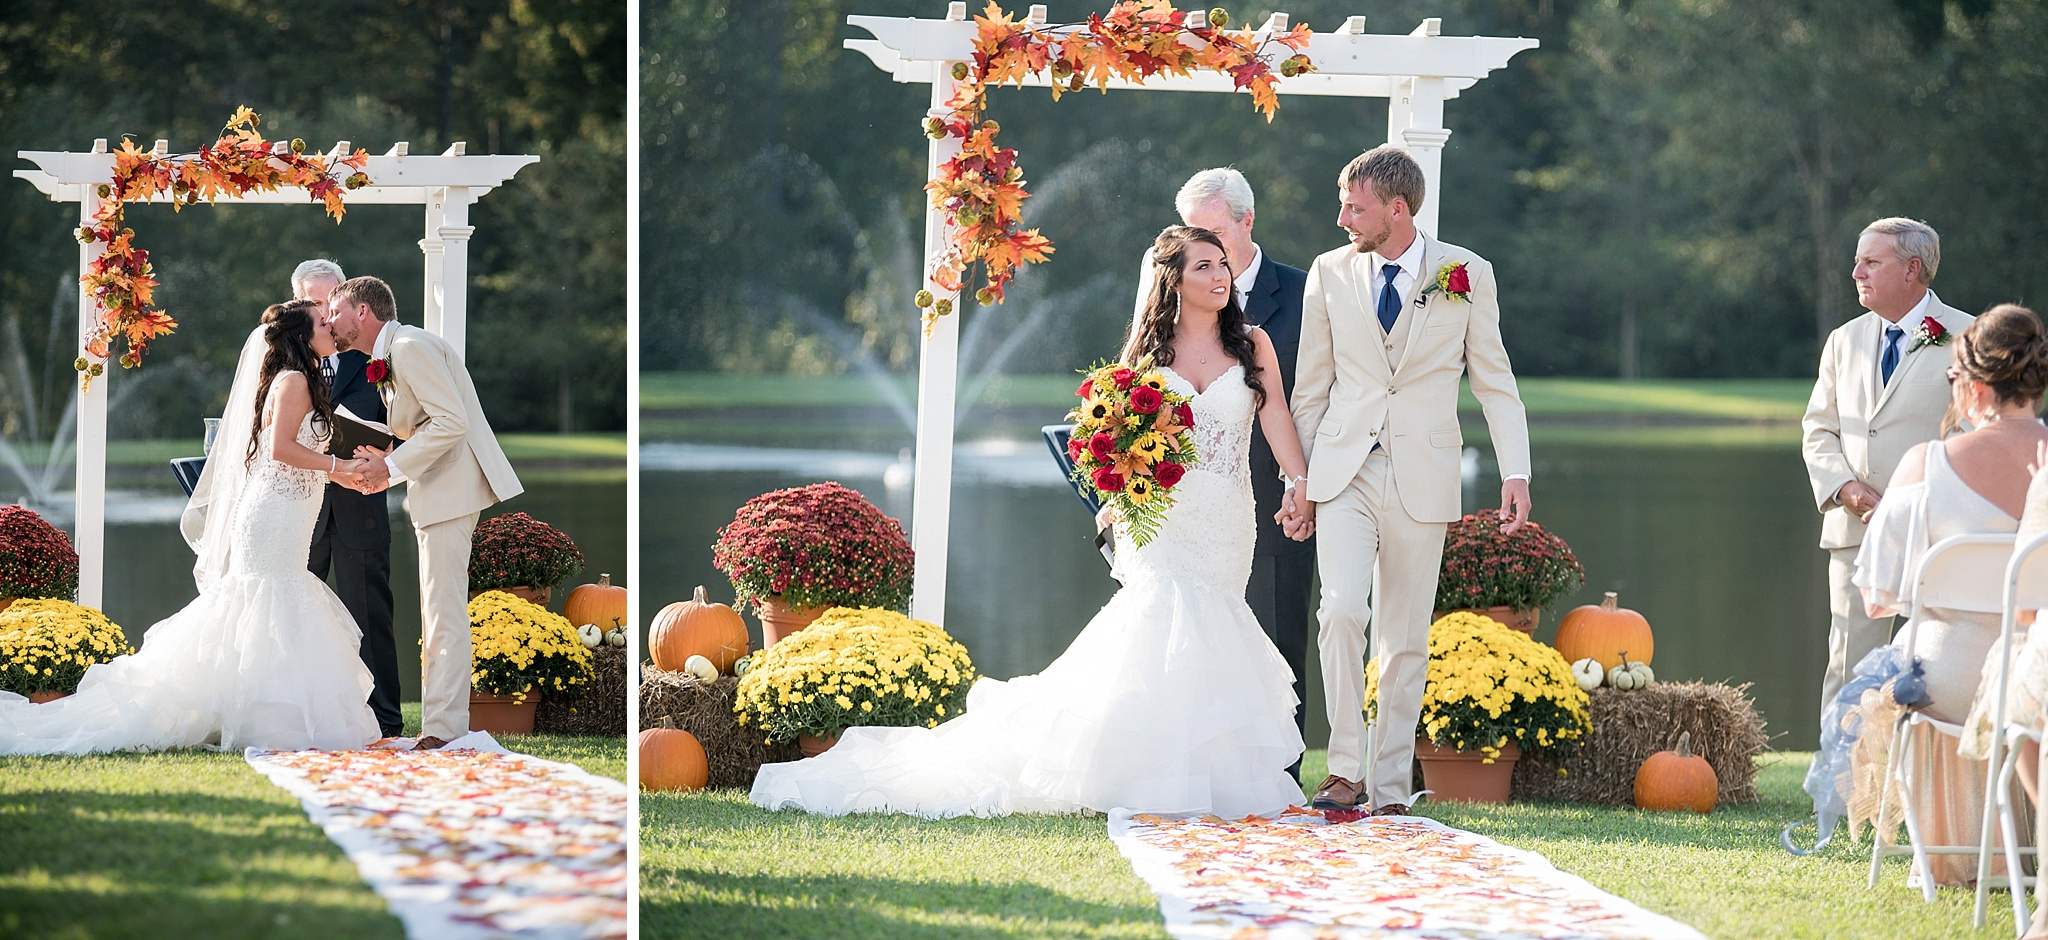 Bailey-NC-Wedding-Photographer-168.jpg